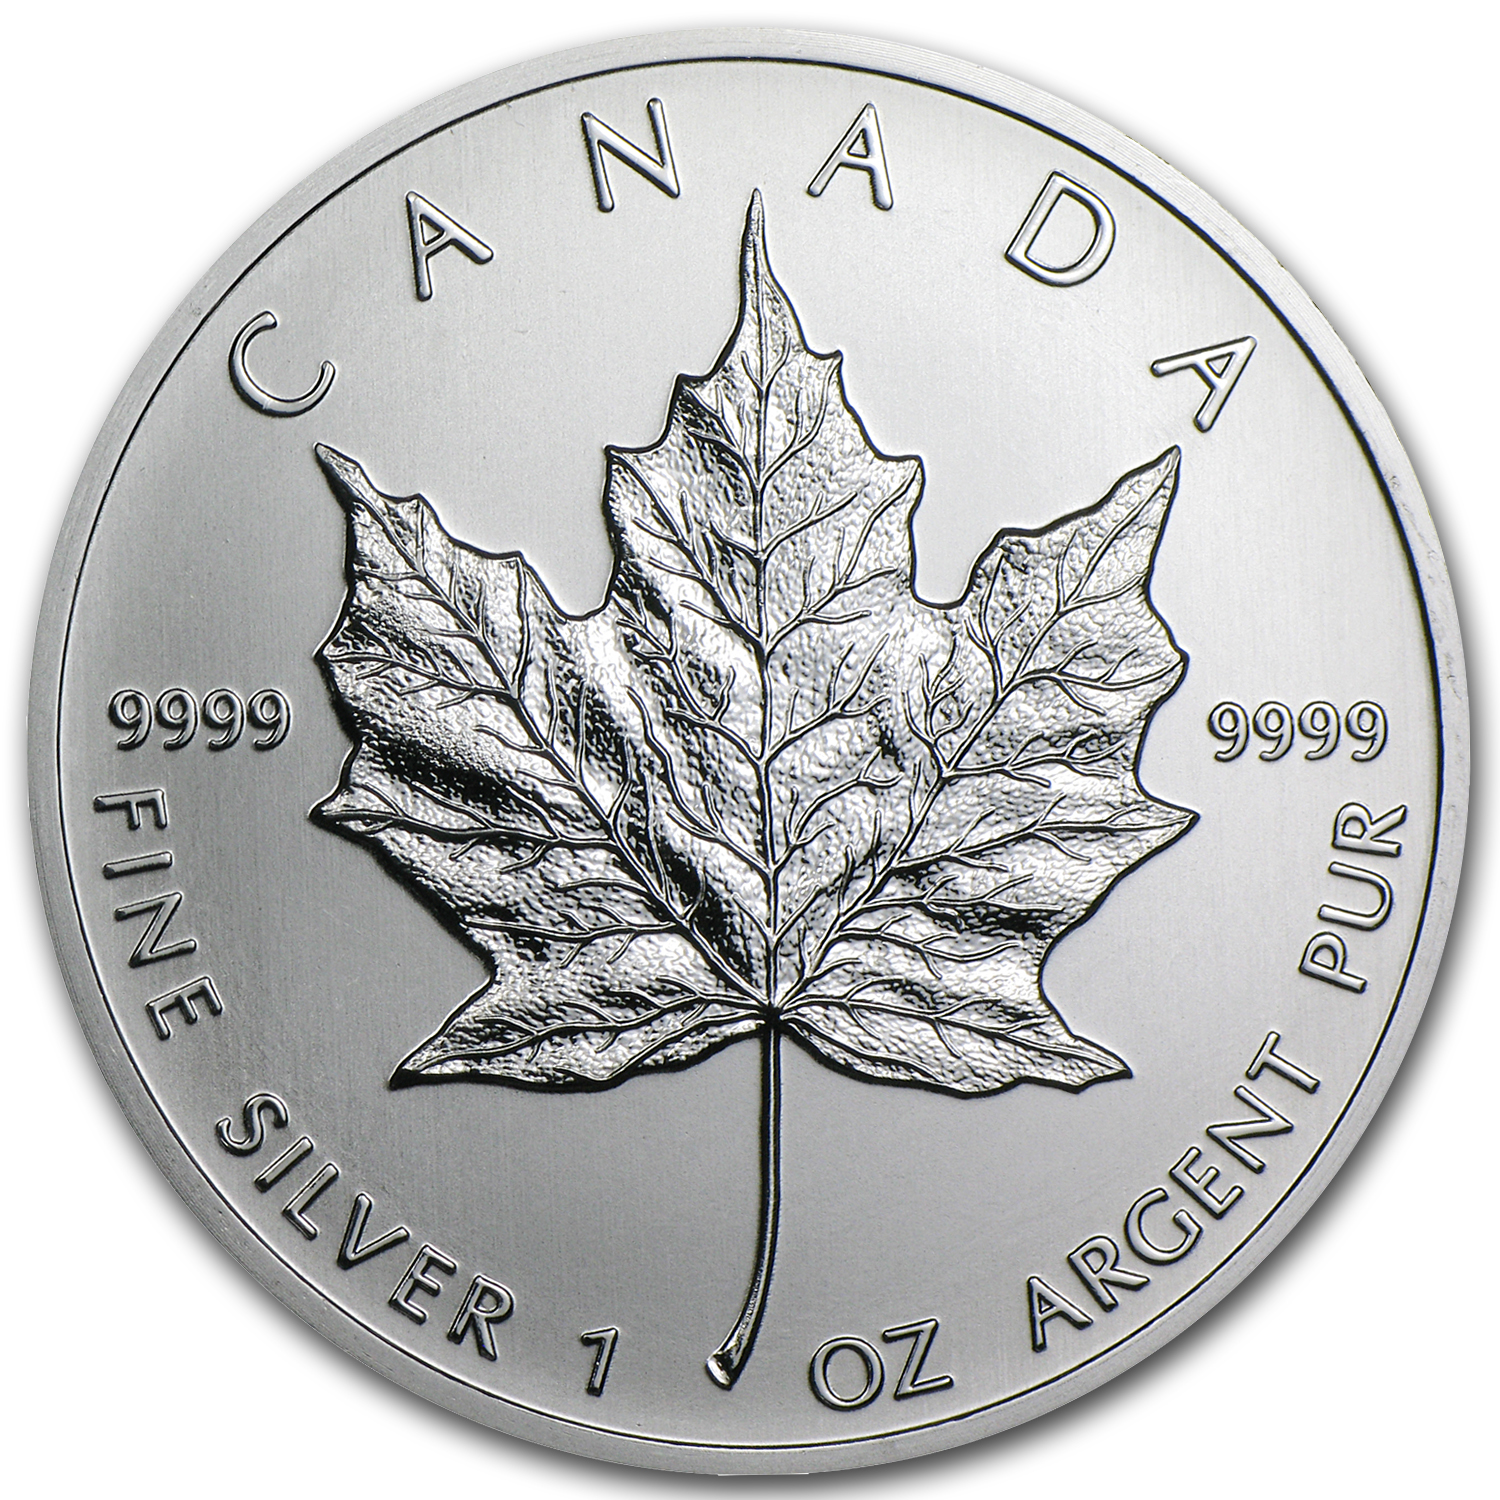 2013 Canada 1 oz Silver Maple Leaf BU